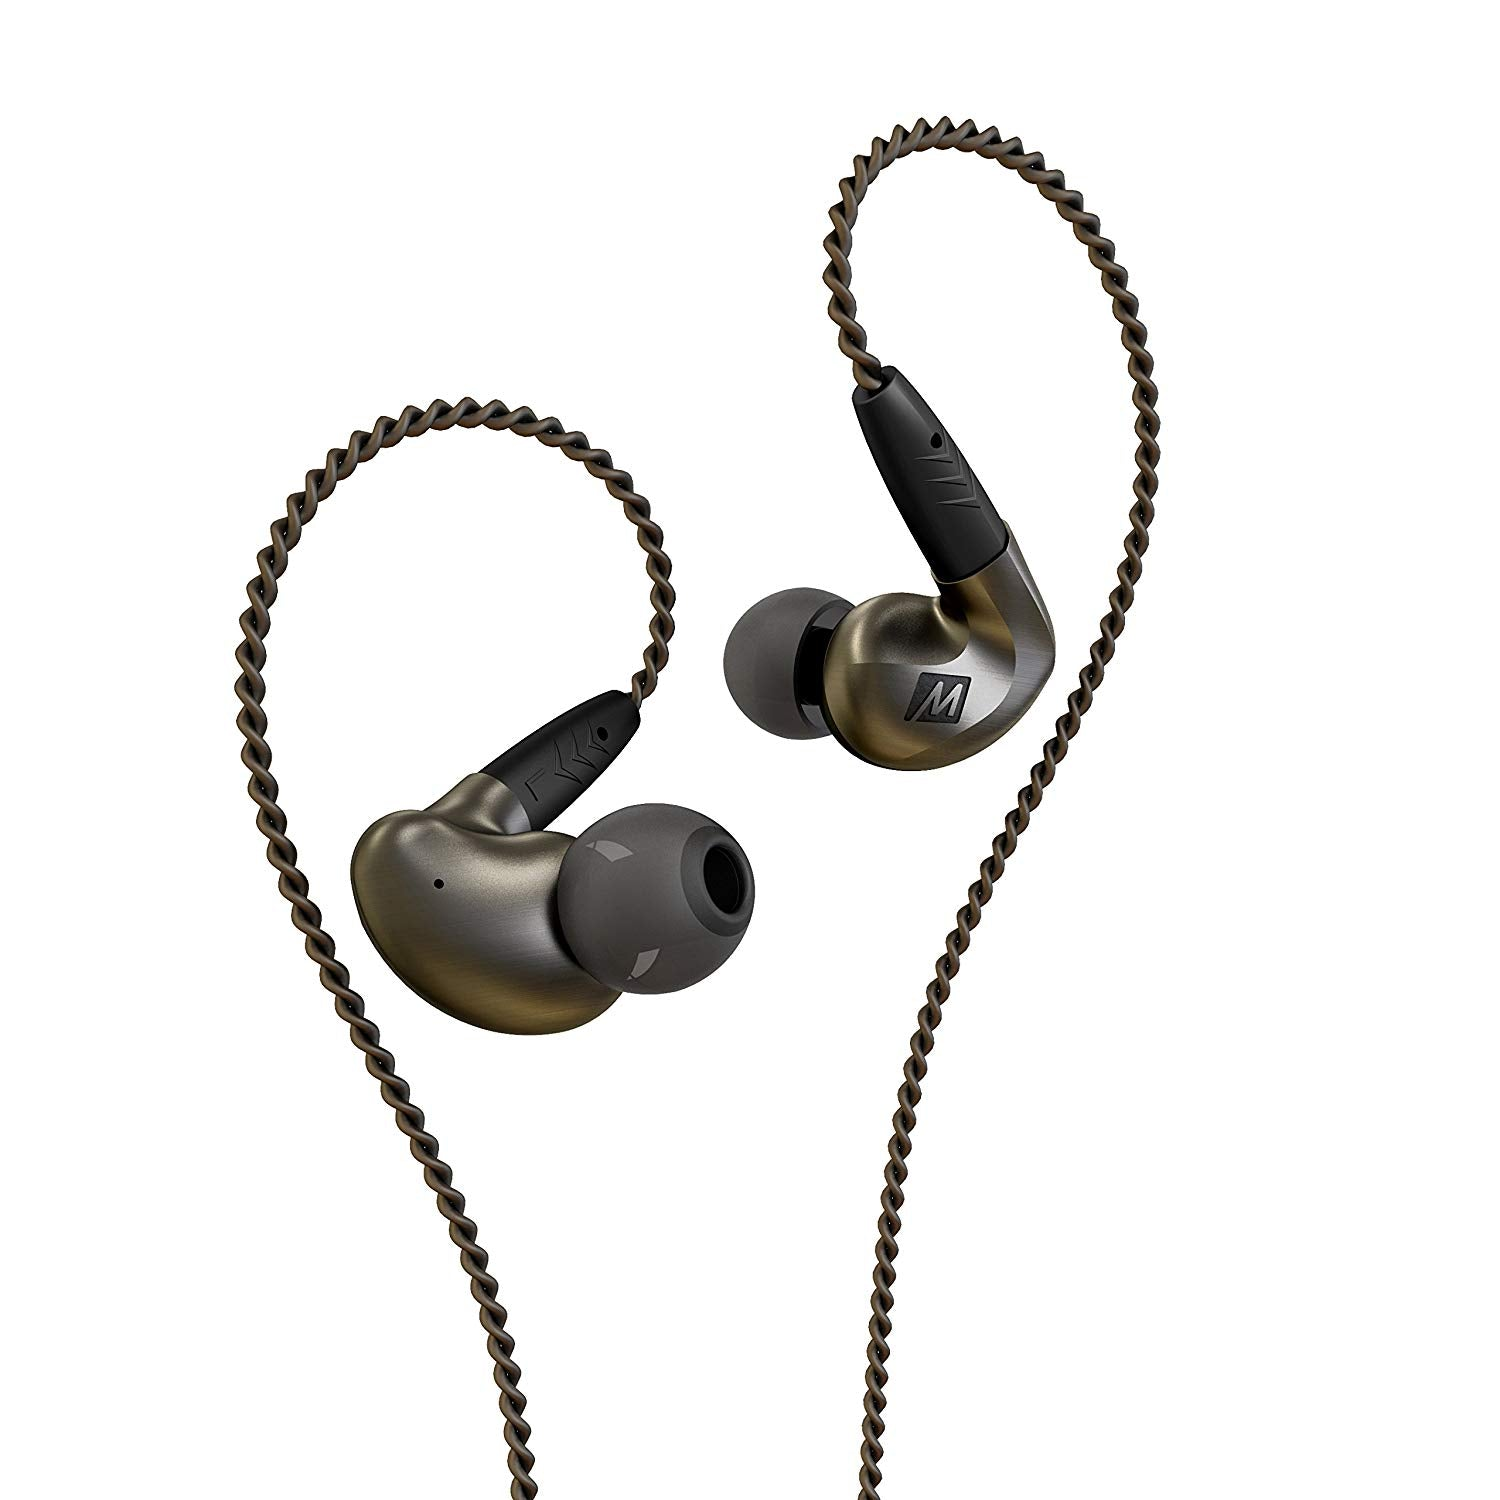 MEE Audio Pinnacle P1 Hi-Fi Audiophile In-Ear Headphones - Jaben - The Little Headphone Store